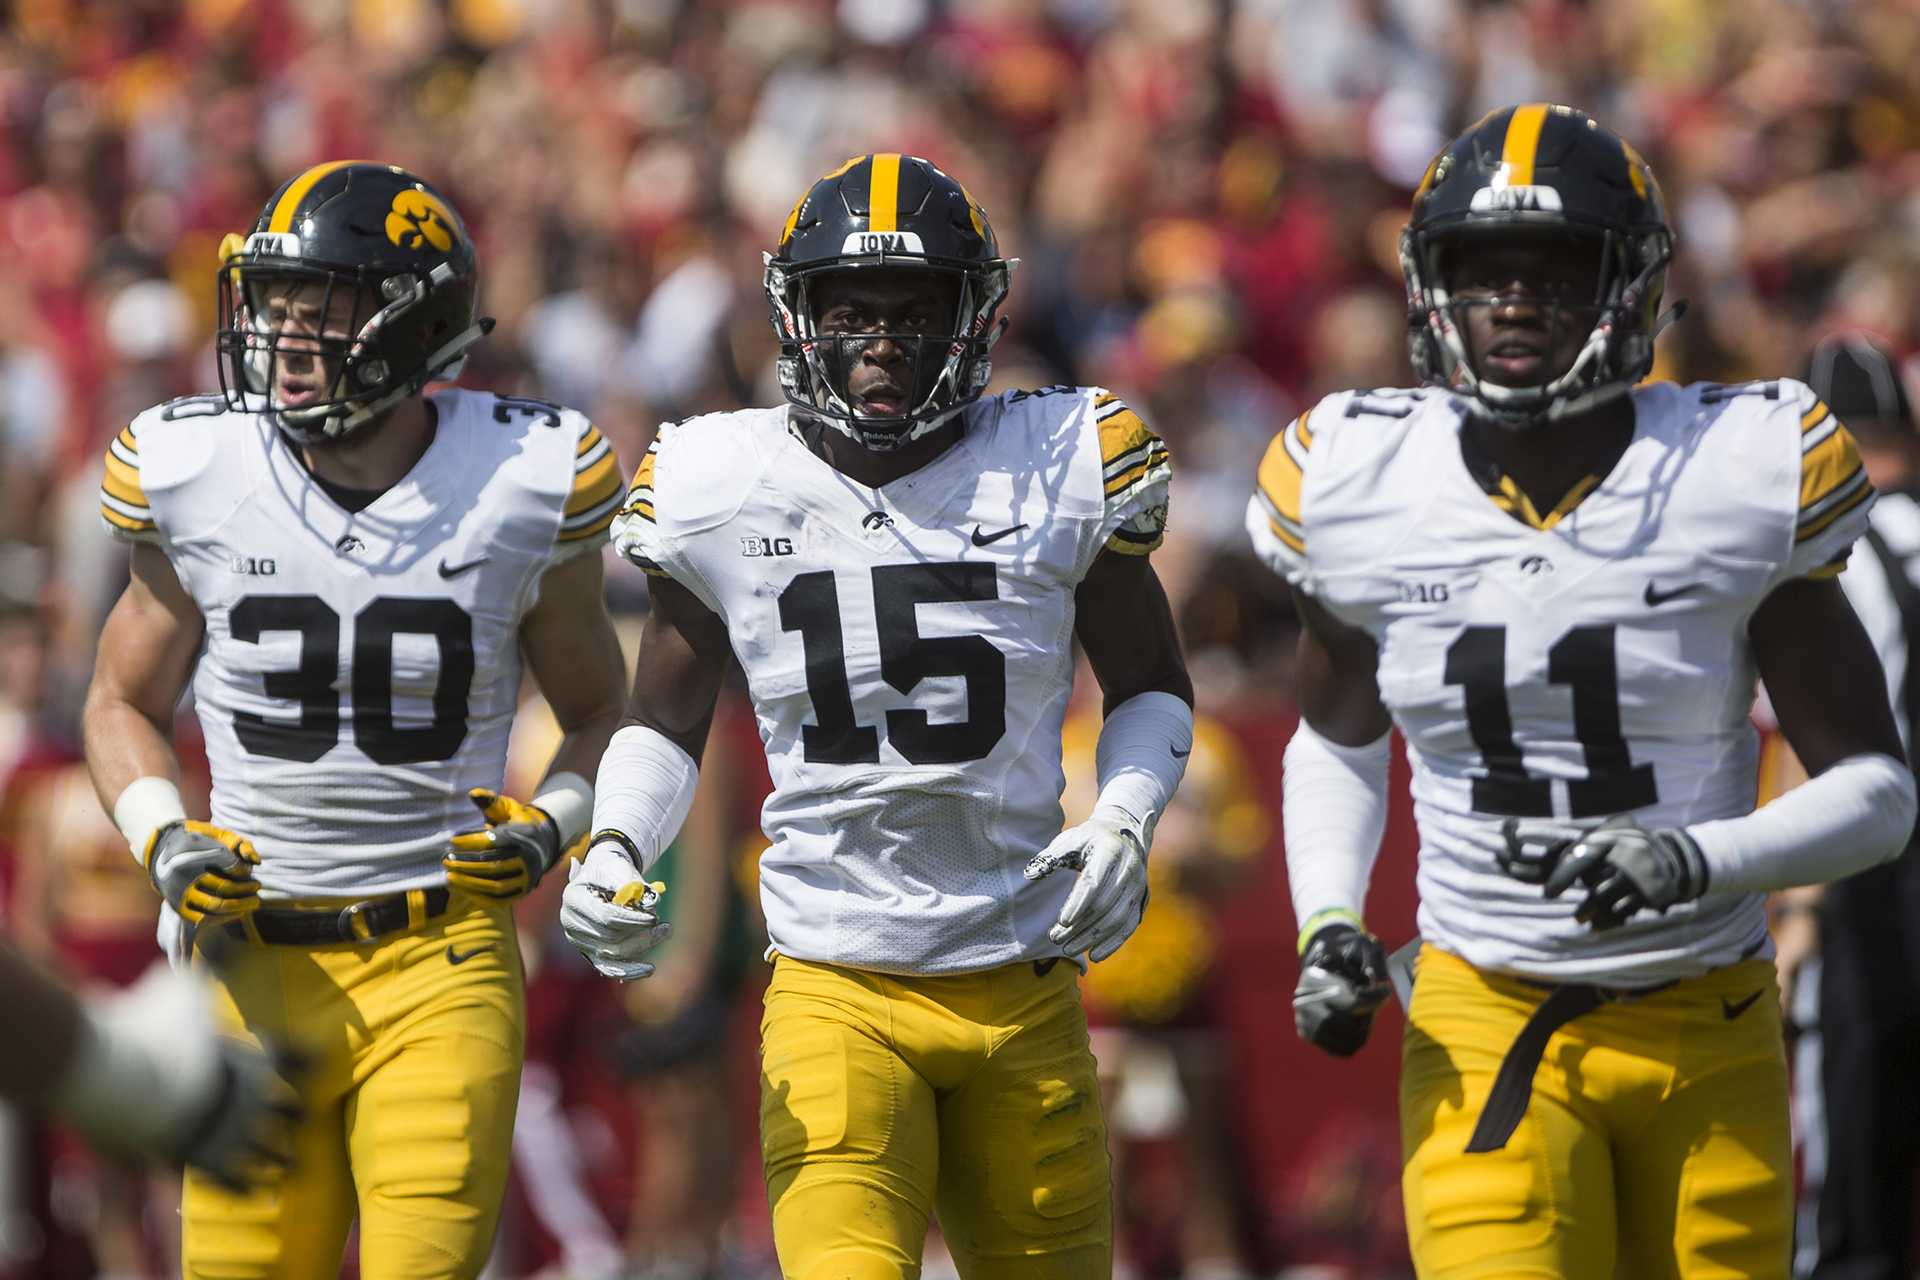 Iowa's Jake Gervase (30), Joshua Jackson (15), and Michael Ojemudia (11) run off the field during the game at Jack Trice Stadium on Saturday, Sept. 9, 2017.  (Ben Smith/The Daily Iowan)